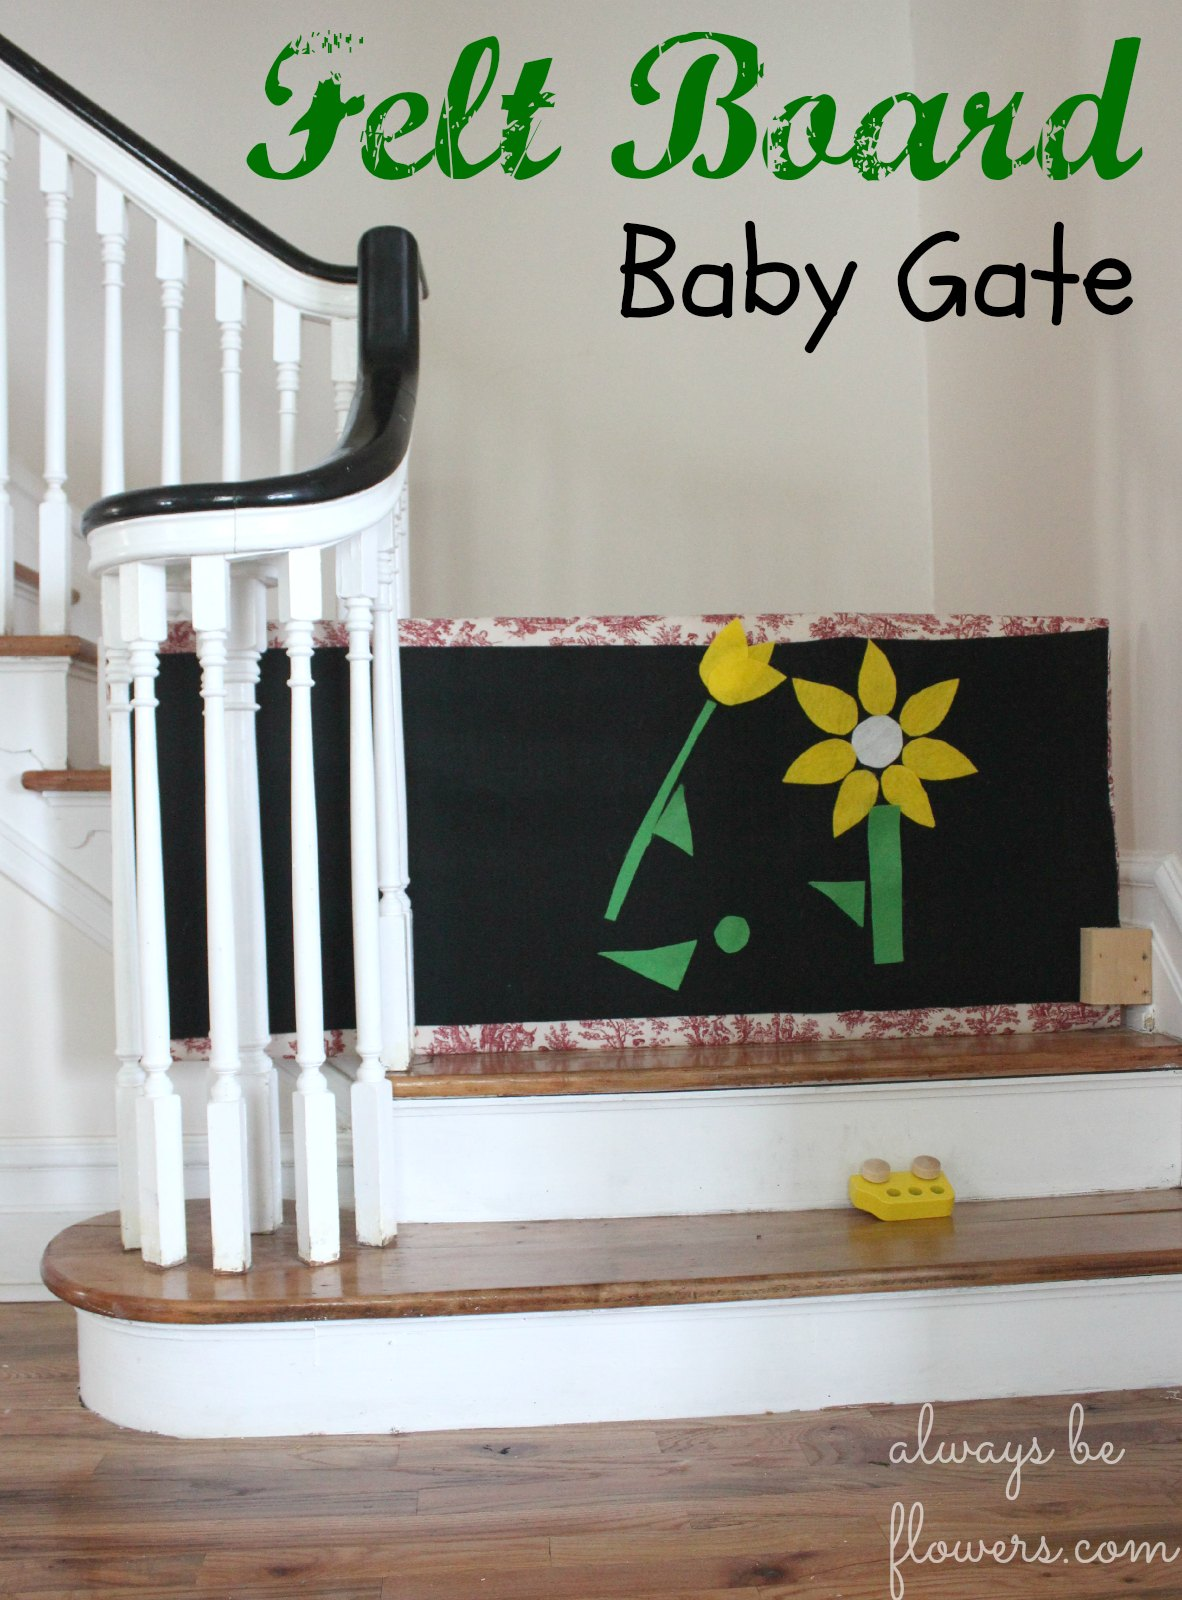 Felt board baby gate slides aside for stair use.